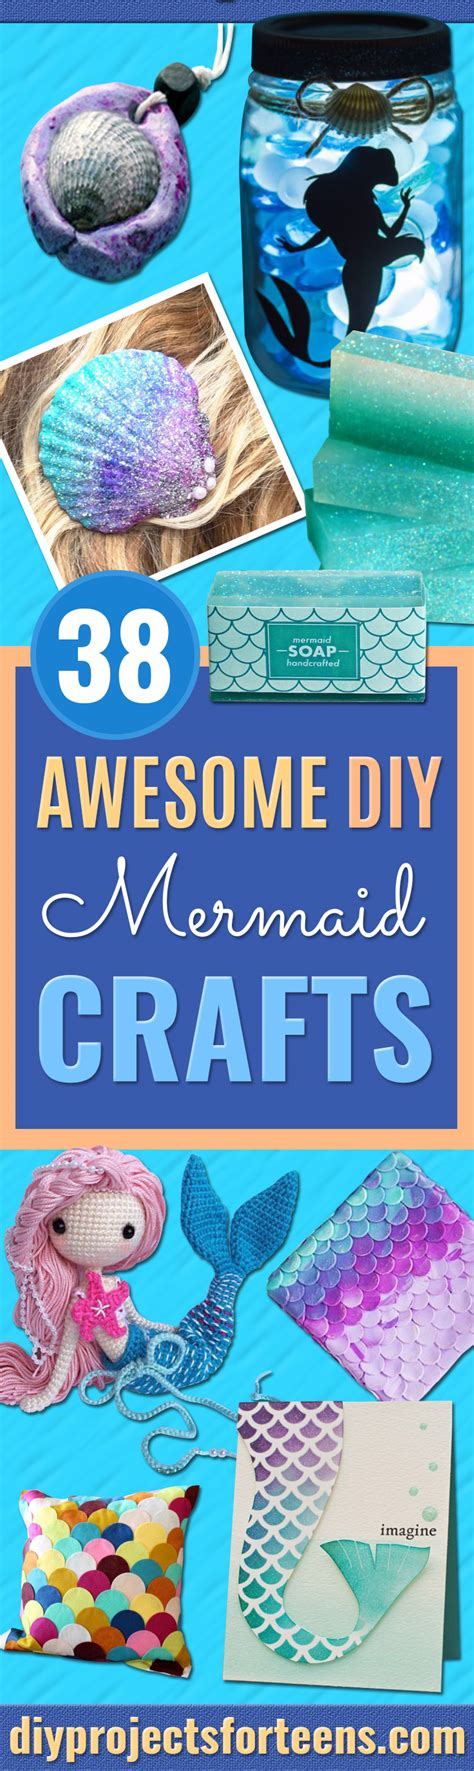 diy awesome crafts 38 awesome diy mermaid crafts 2 diy projects for